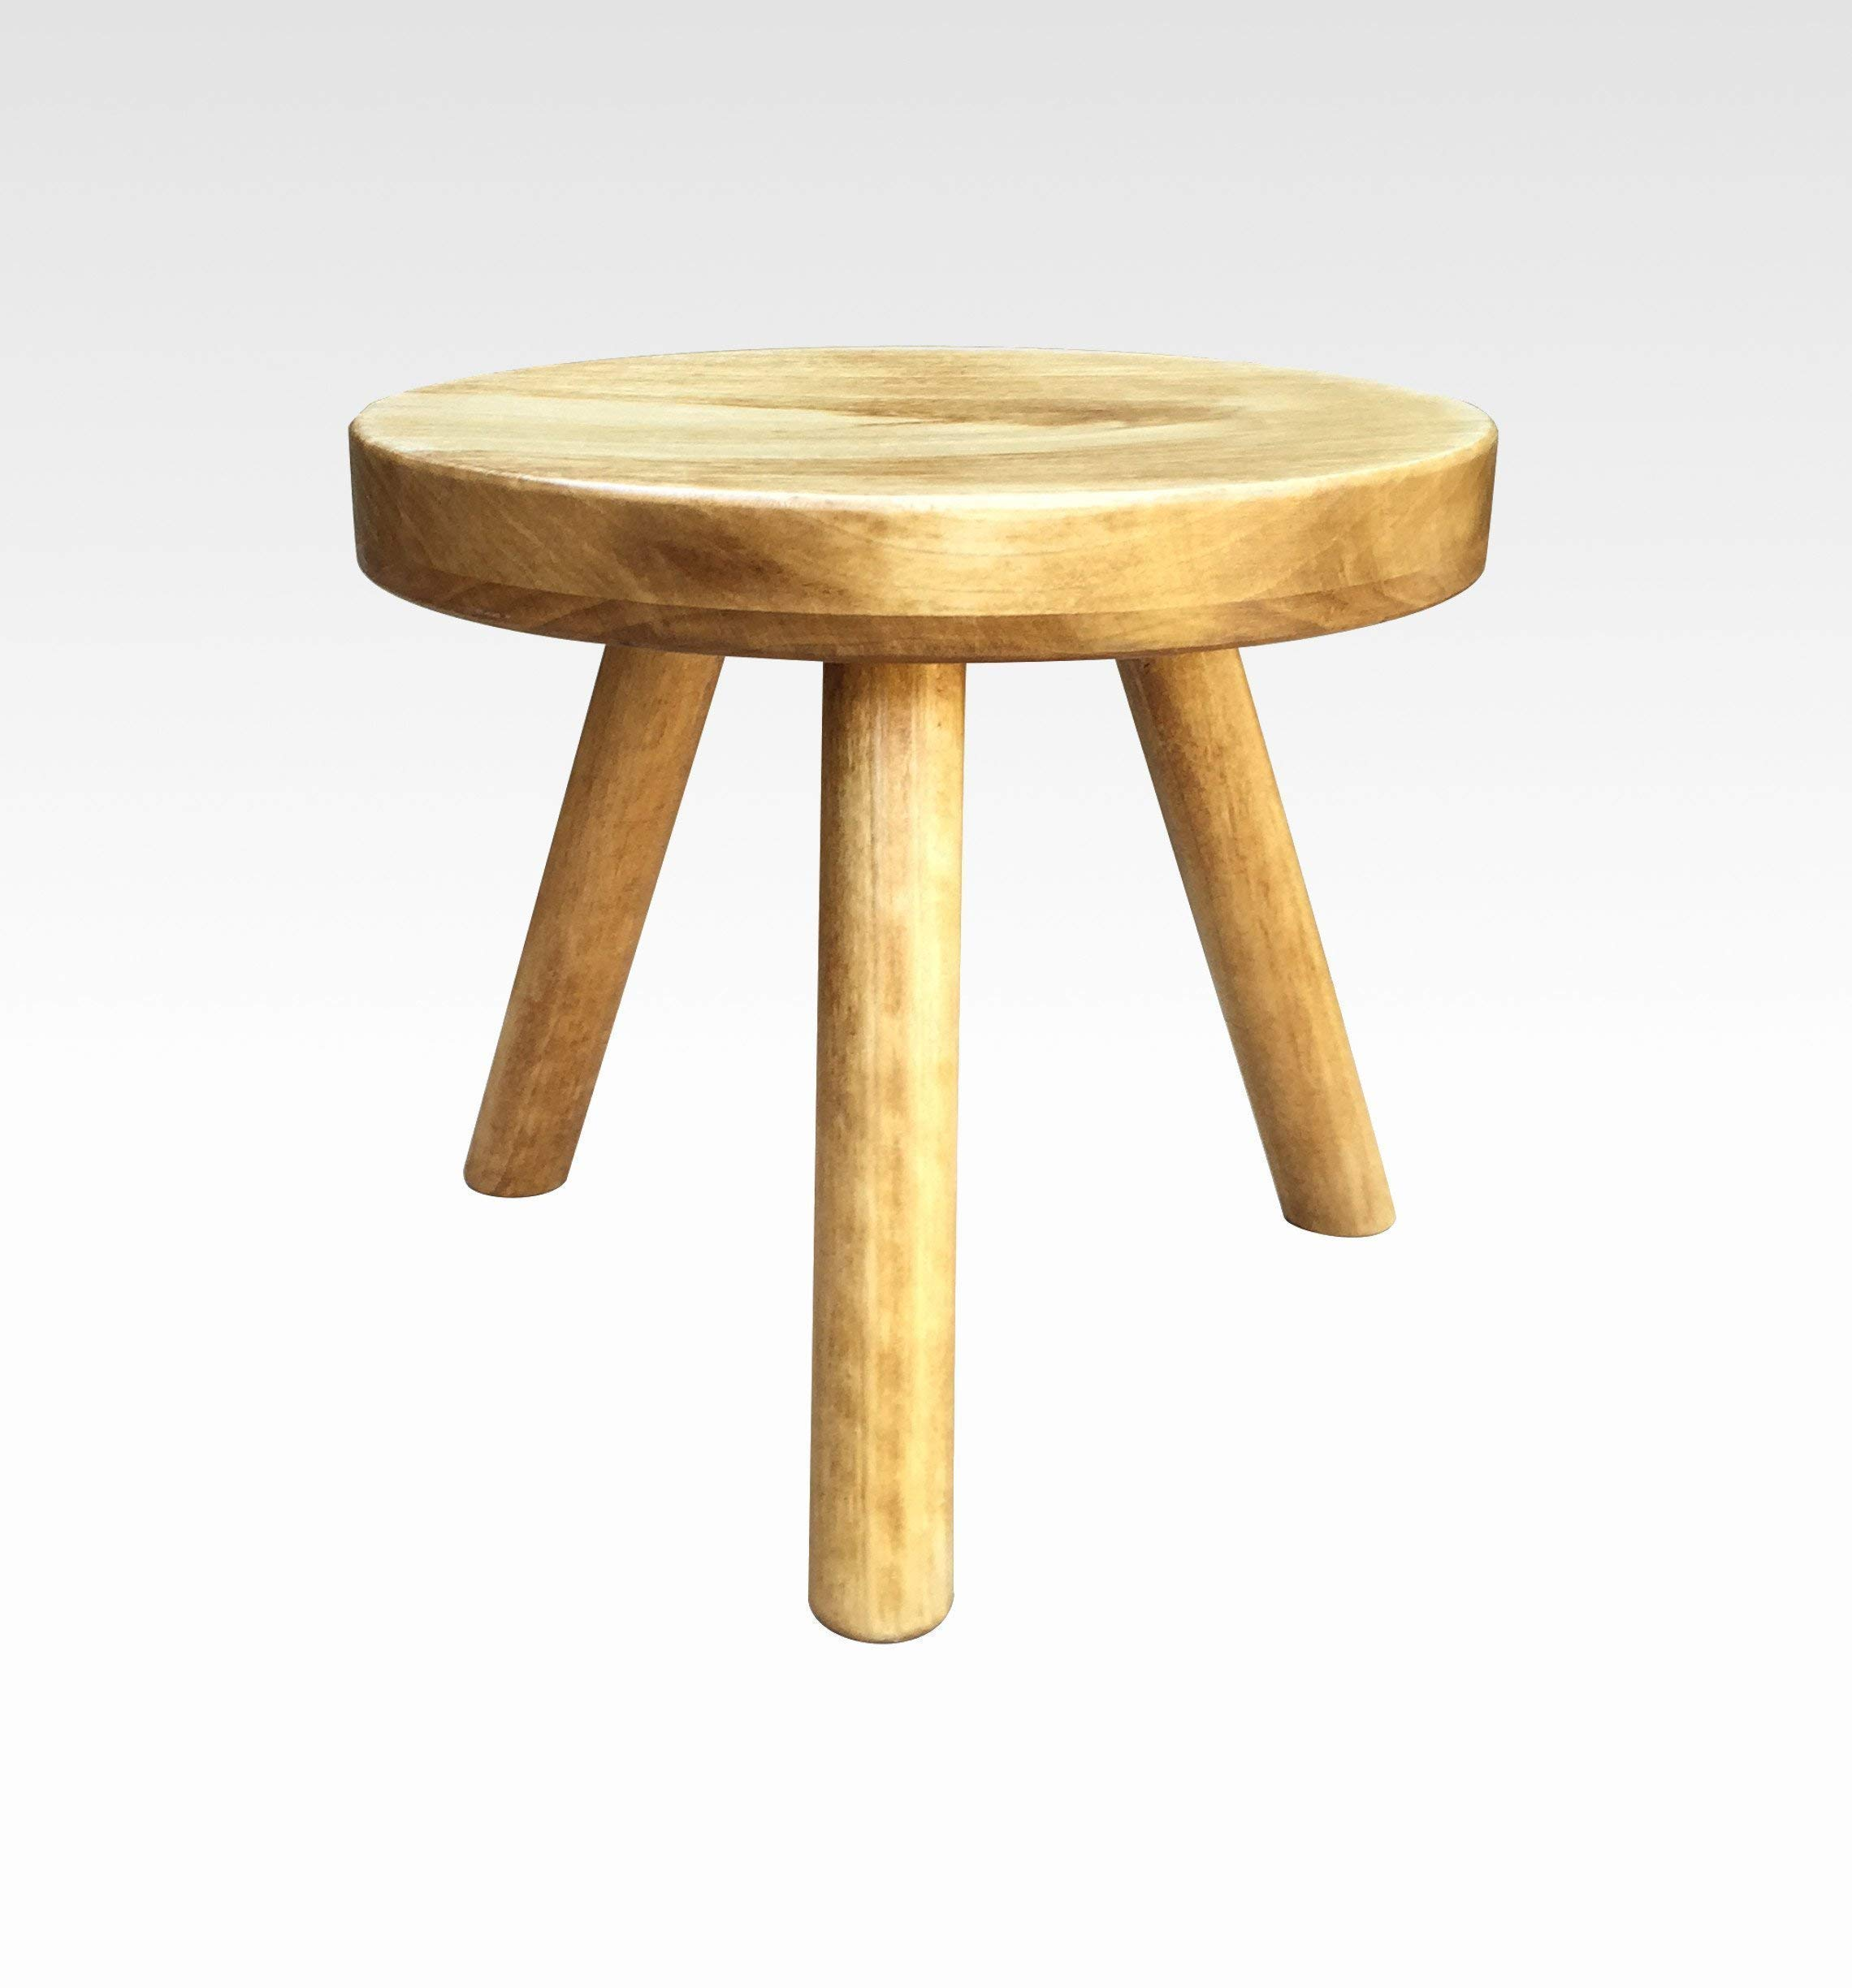 Modern Plant Stand Three Leg Stool by CW Furniture in Honey Indoor Flower Pot Base Display Holder Solid Wooden Kids Chair Table Simple Minimalist Small by Candlewood Furniture